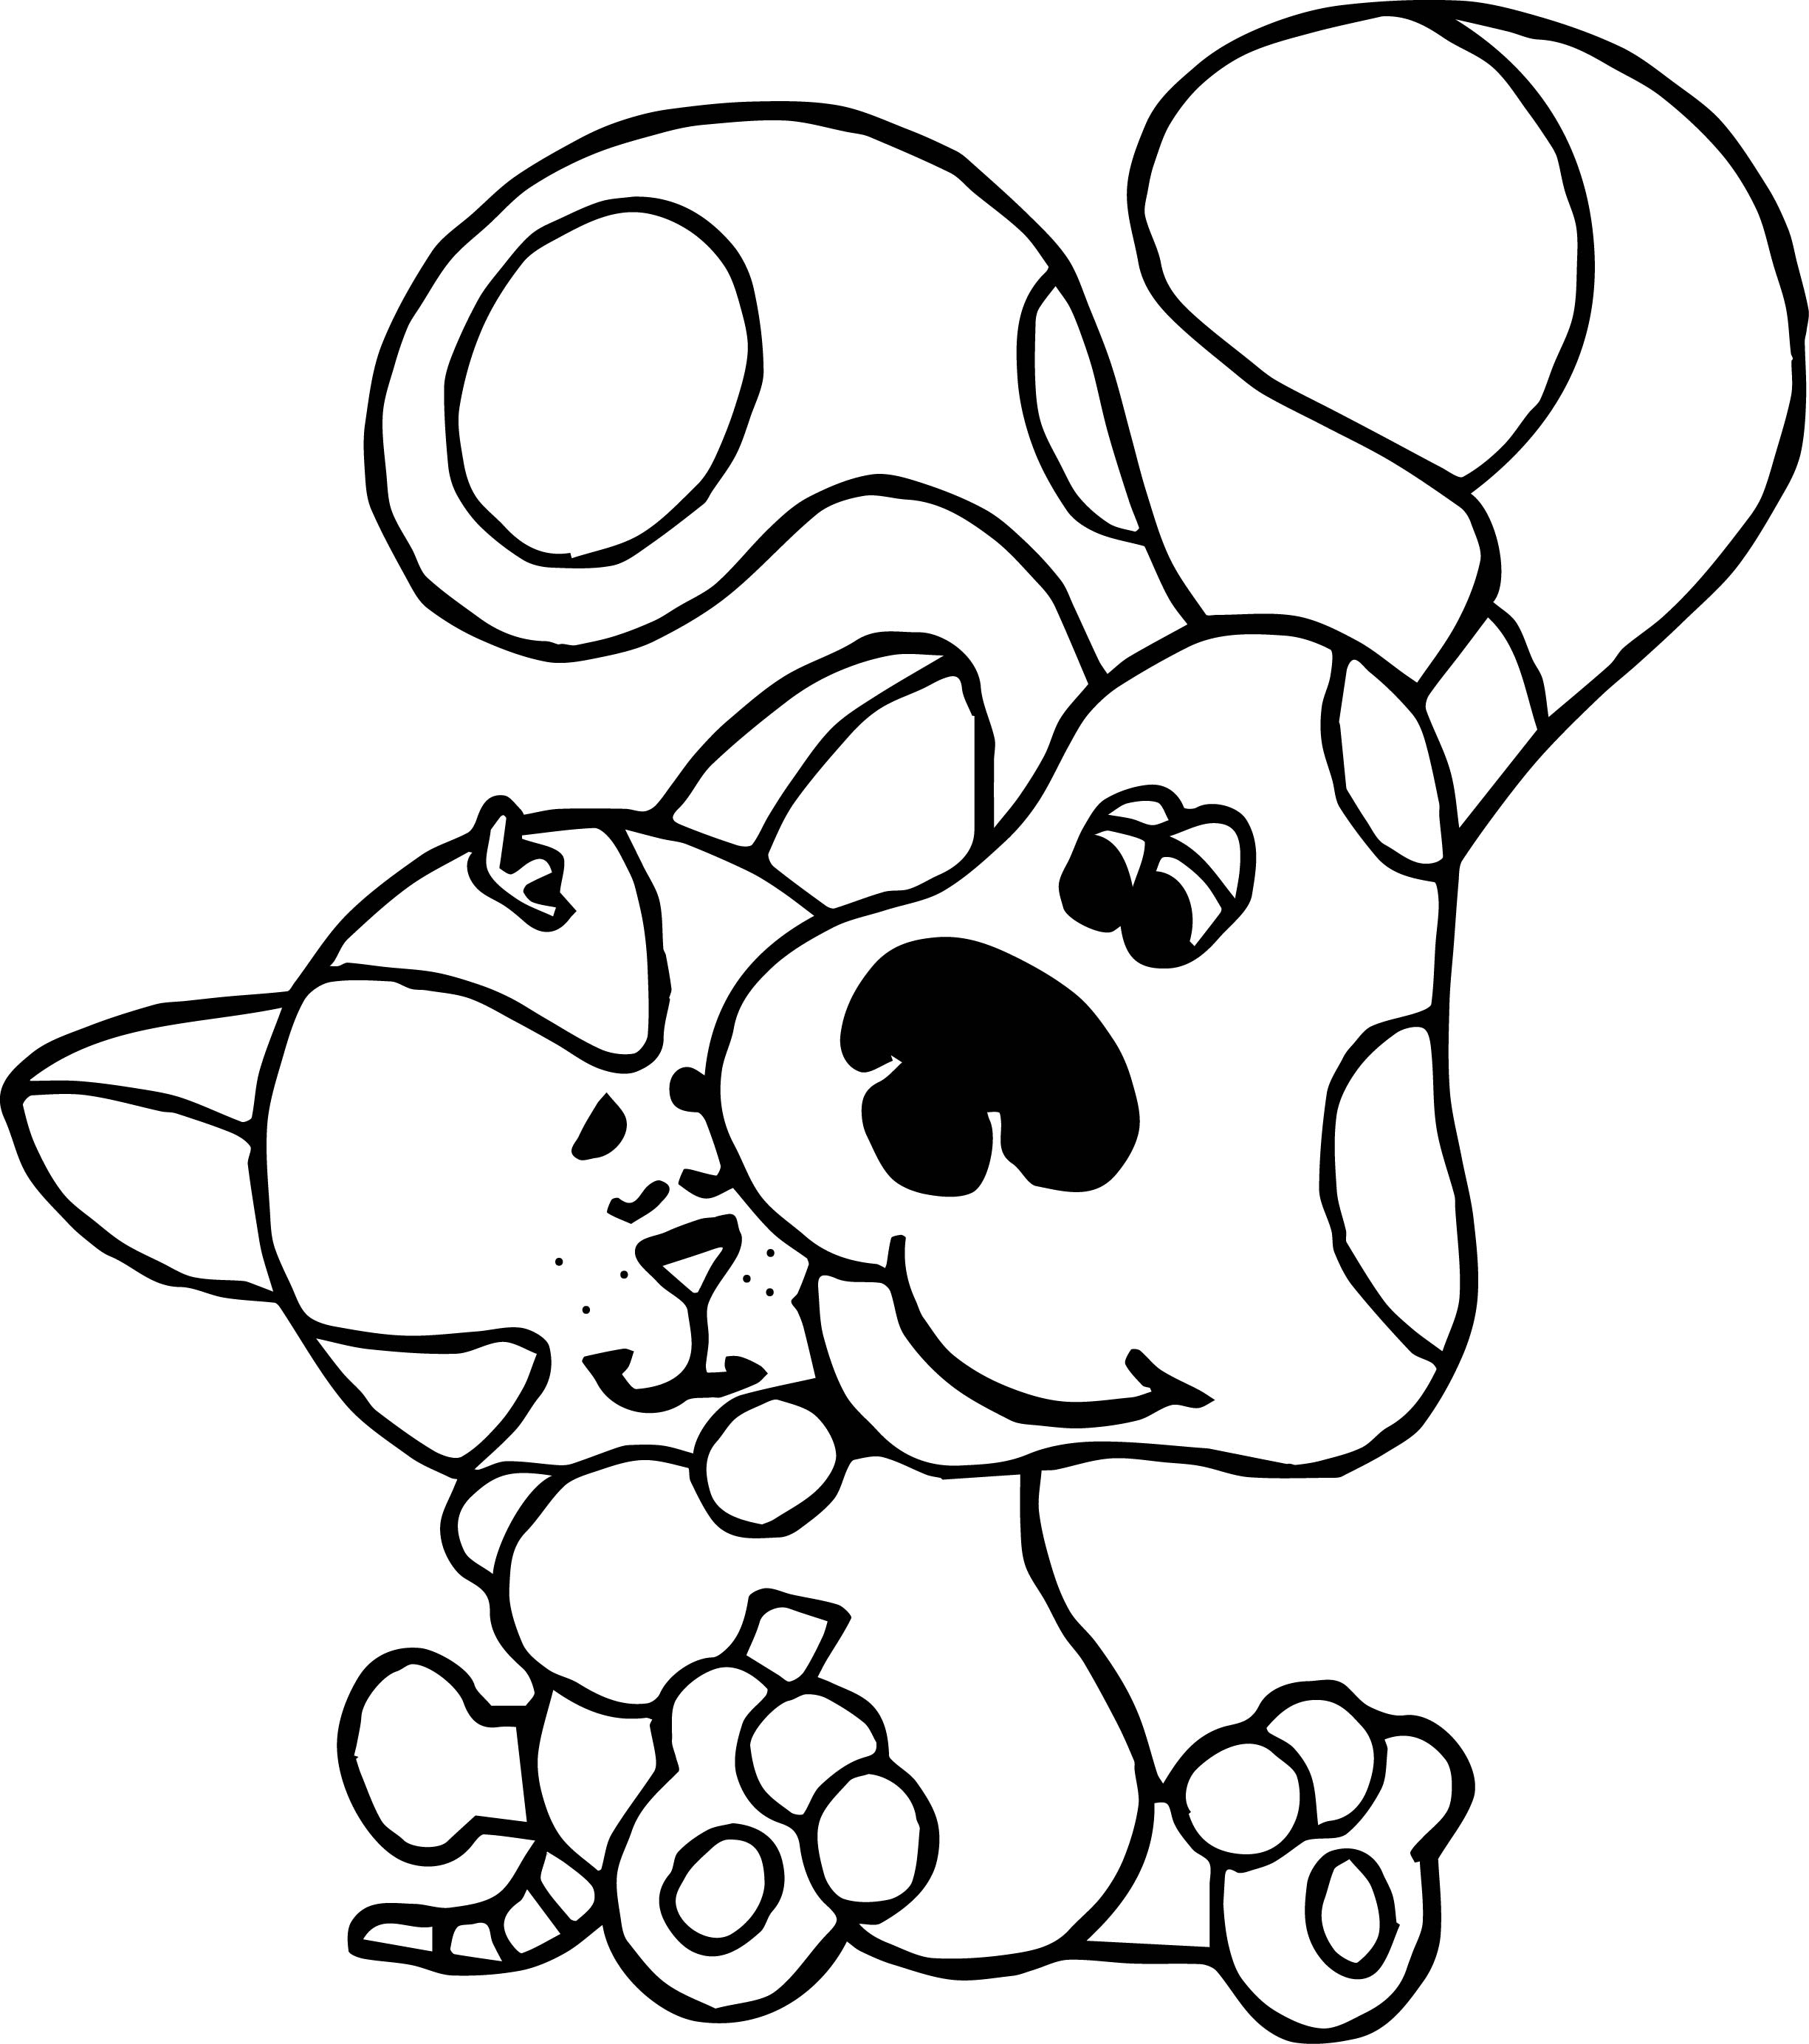 Free Printable Blues Clues Coloring Pages For Kids   Crayola ...   2769x2450